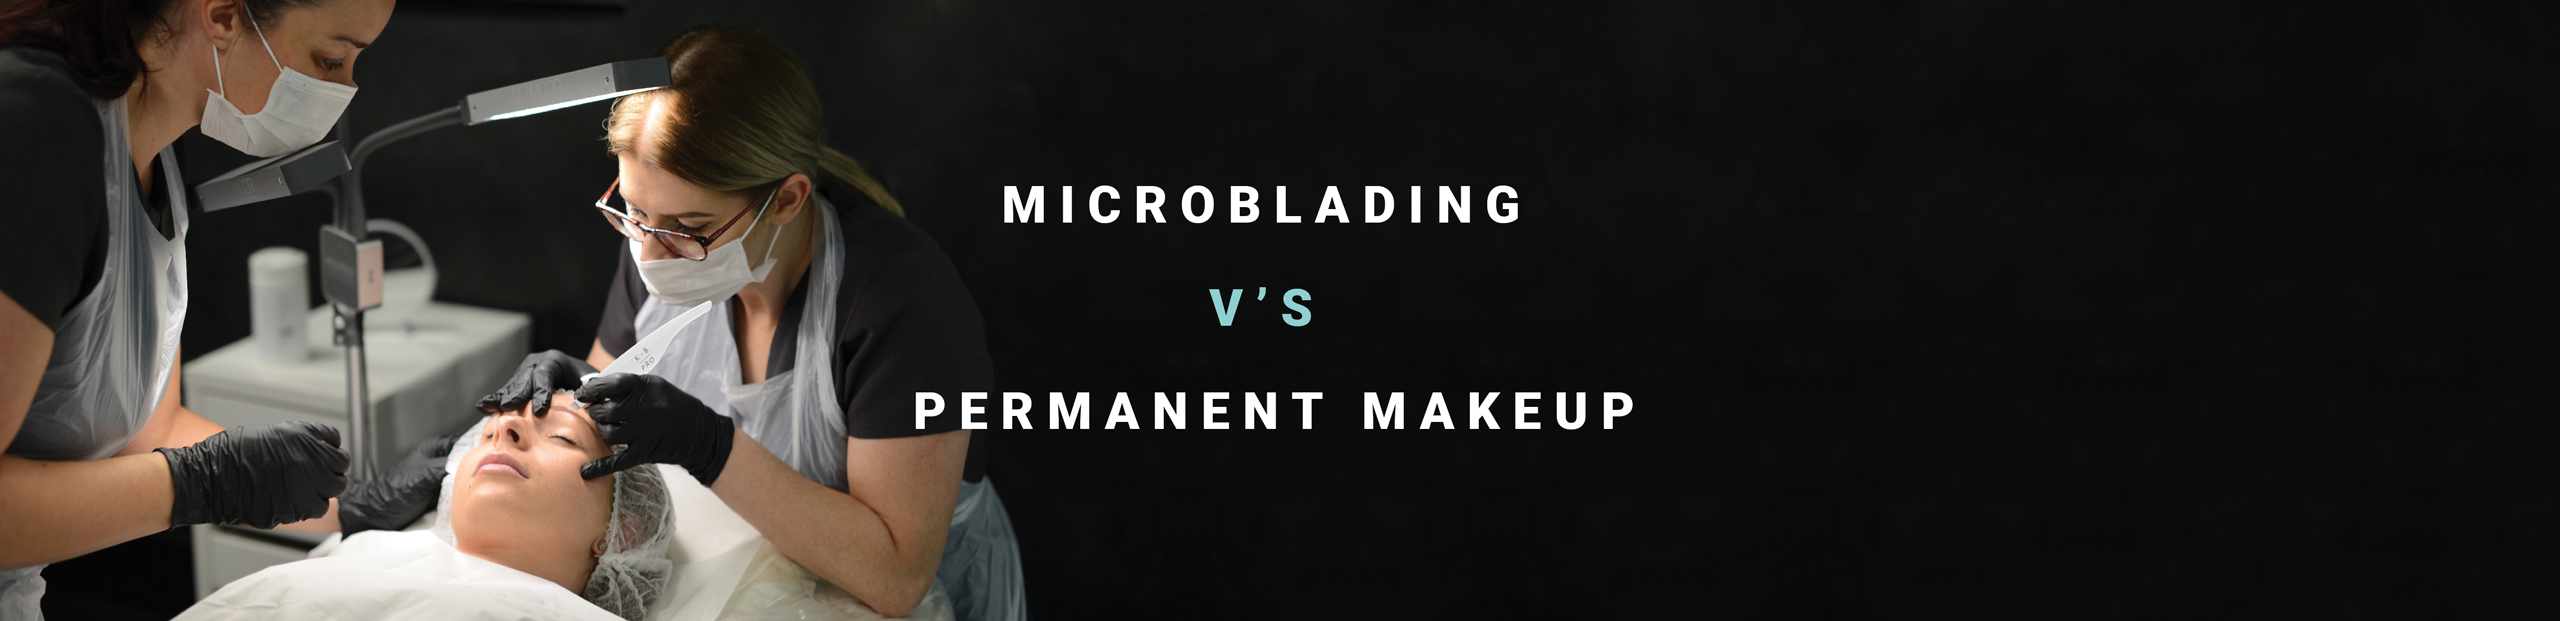 Microblading Vs Permanent Makeup